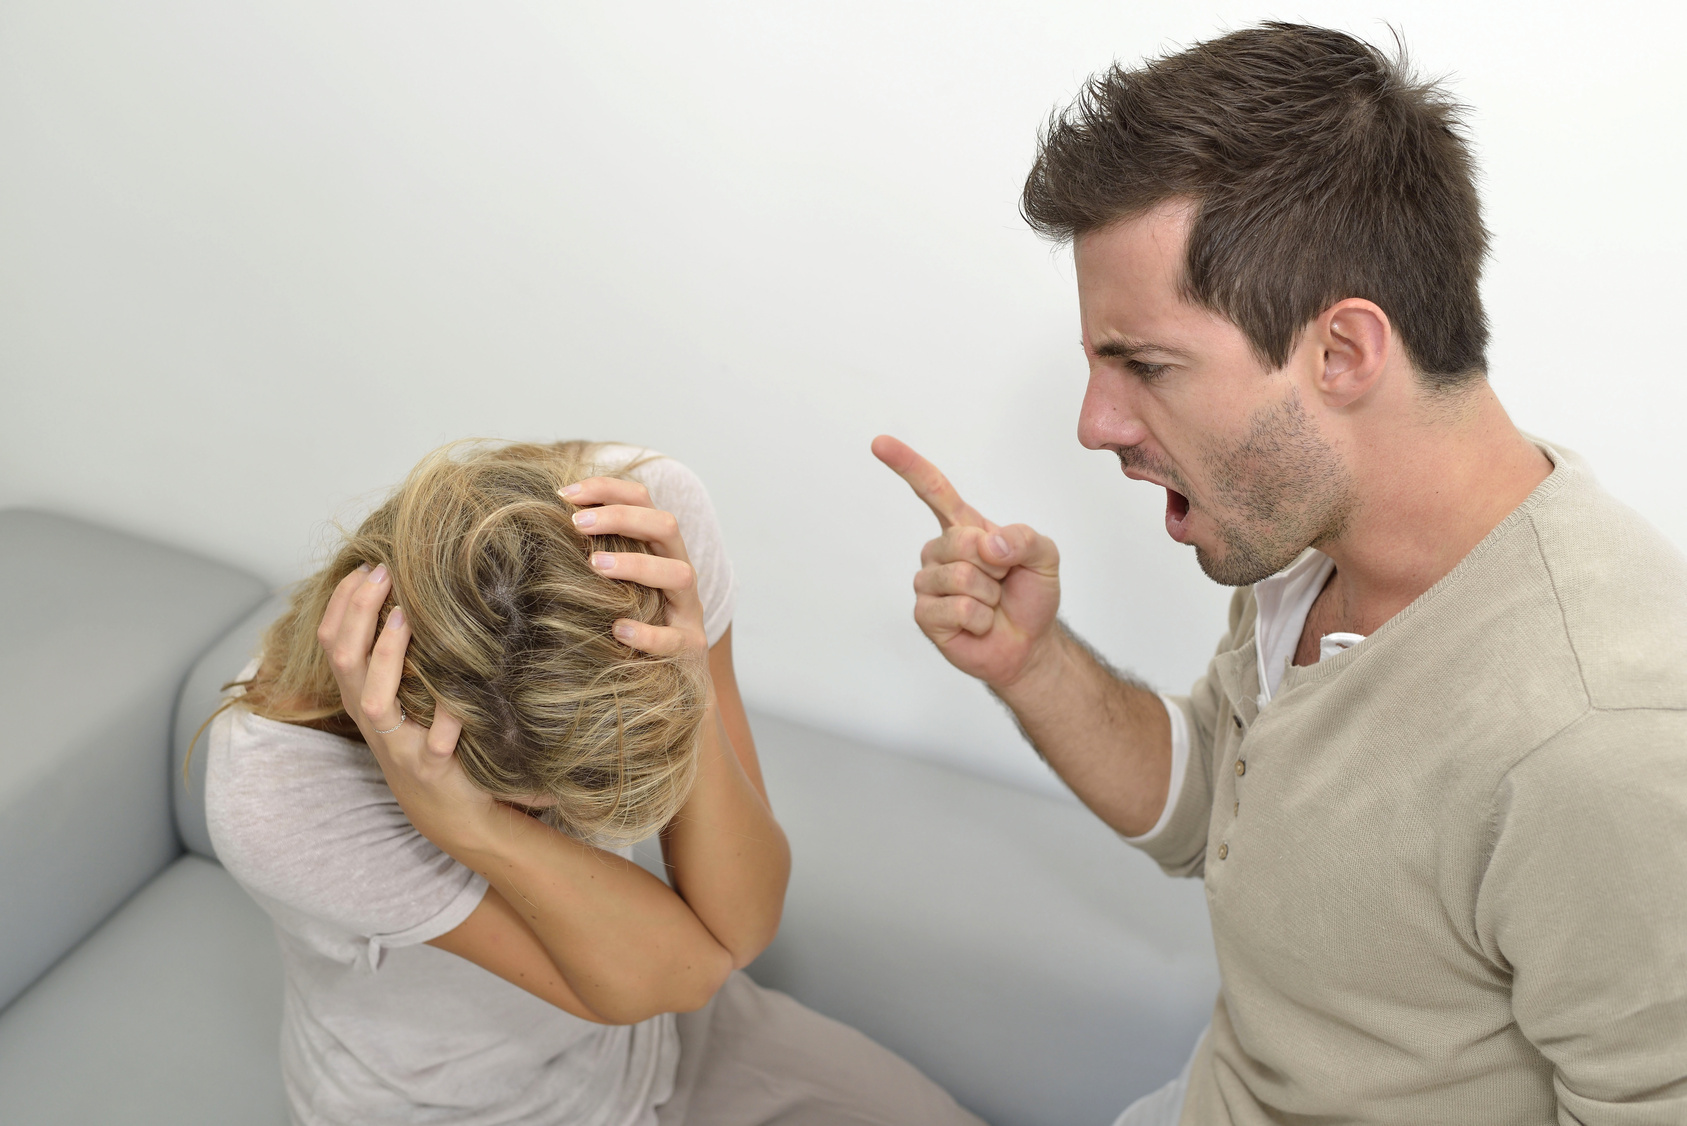 6 reasons why smart people stay in toxic relationships